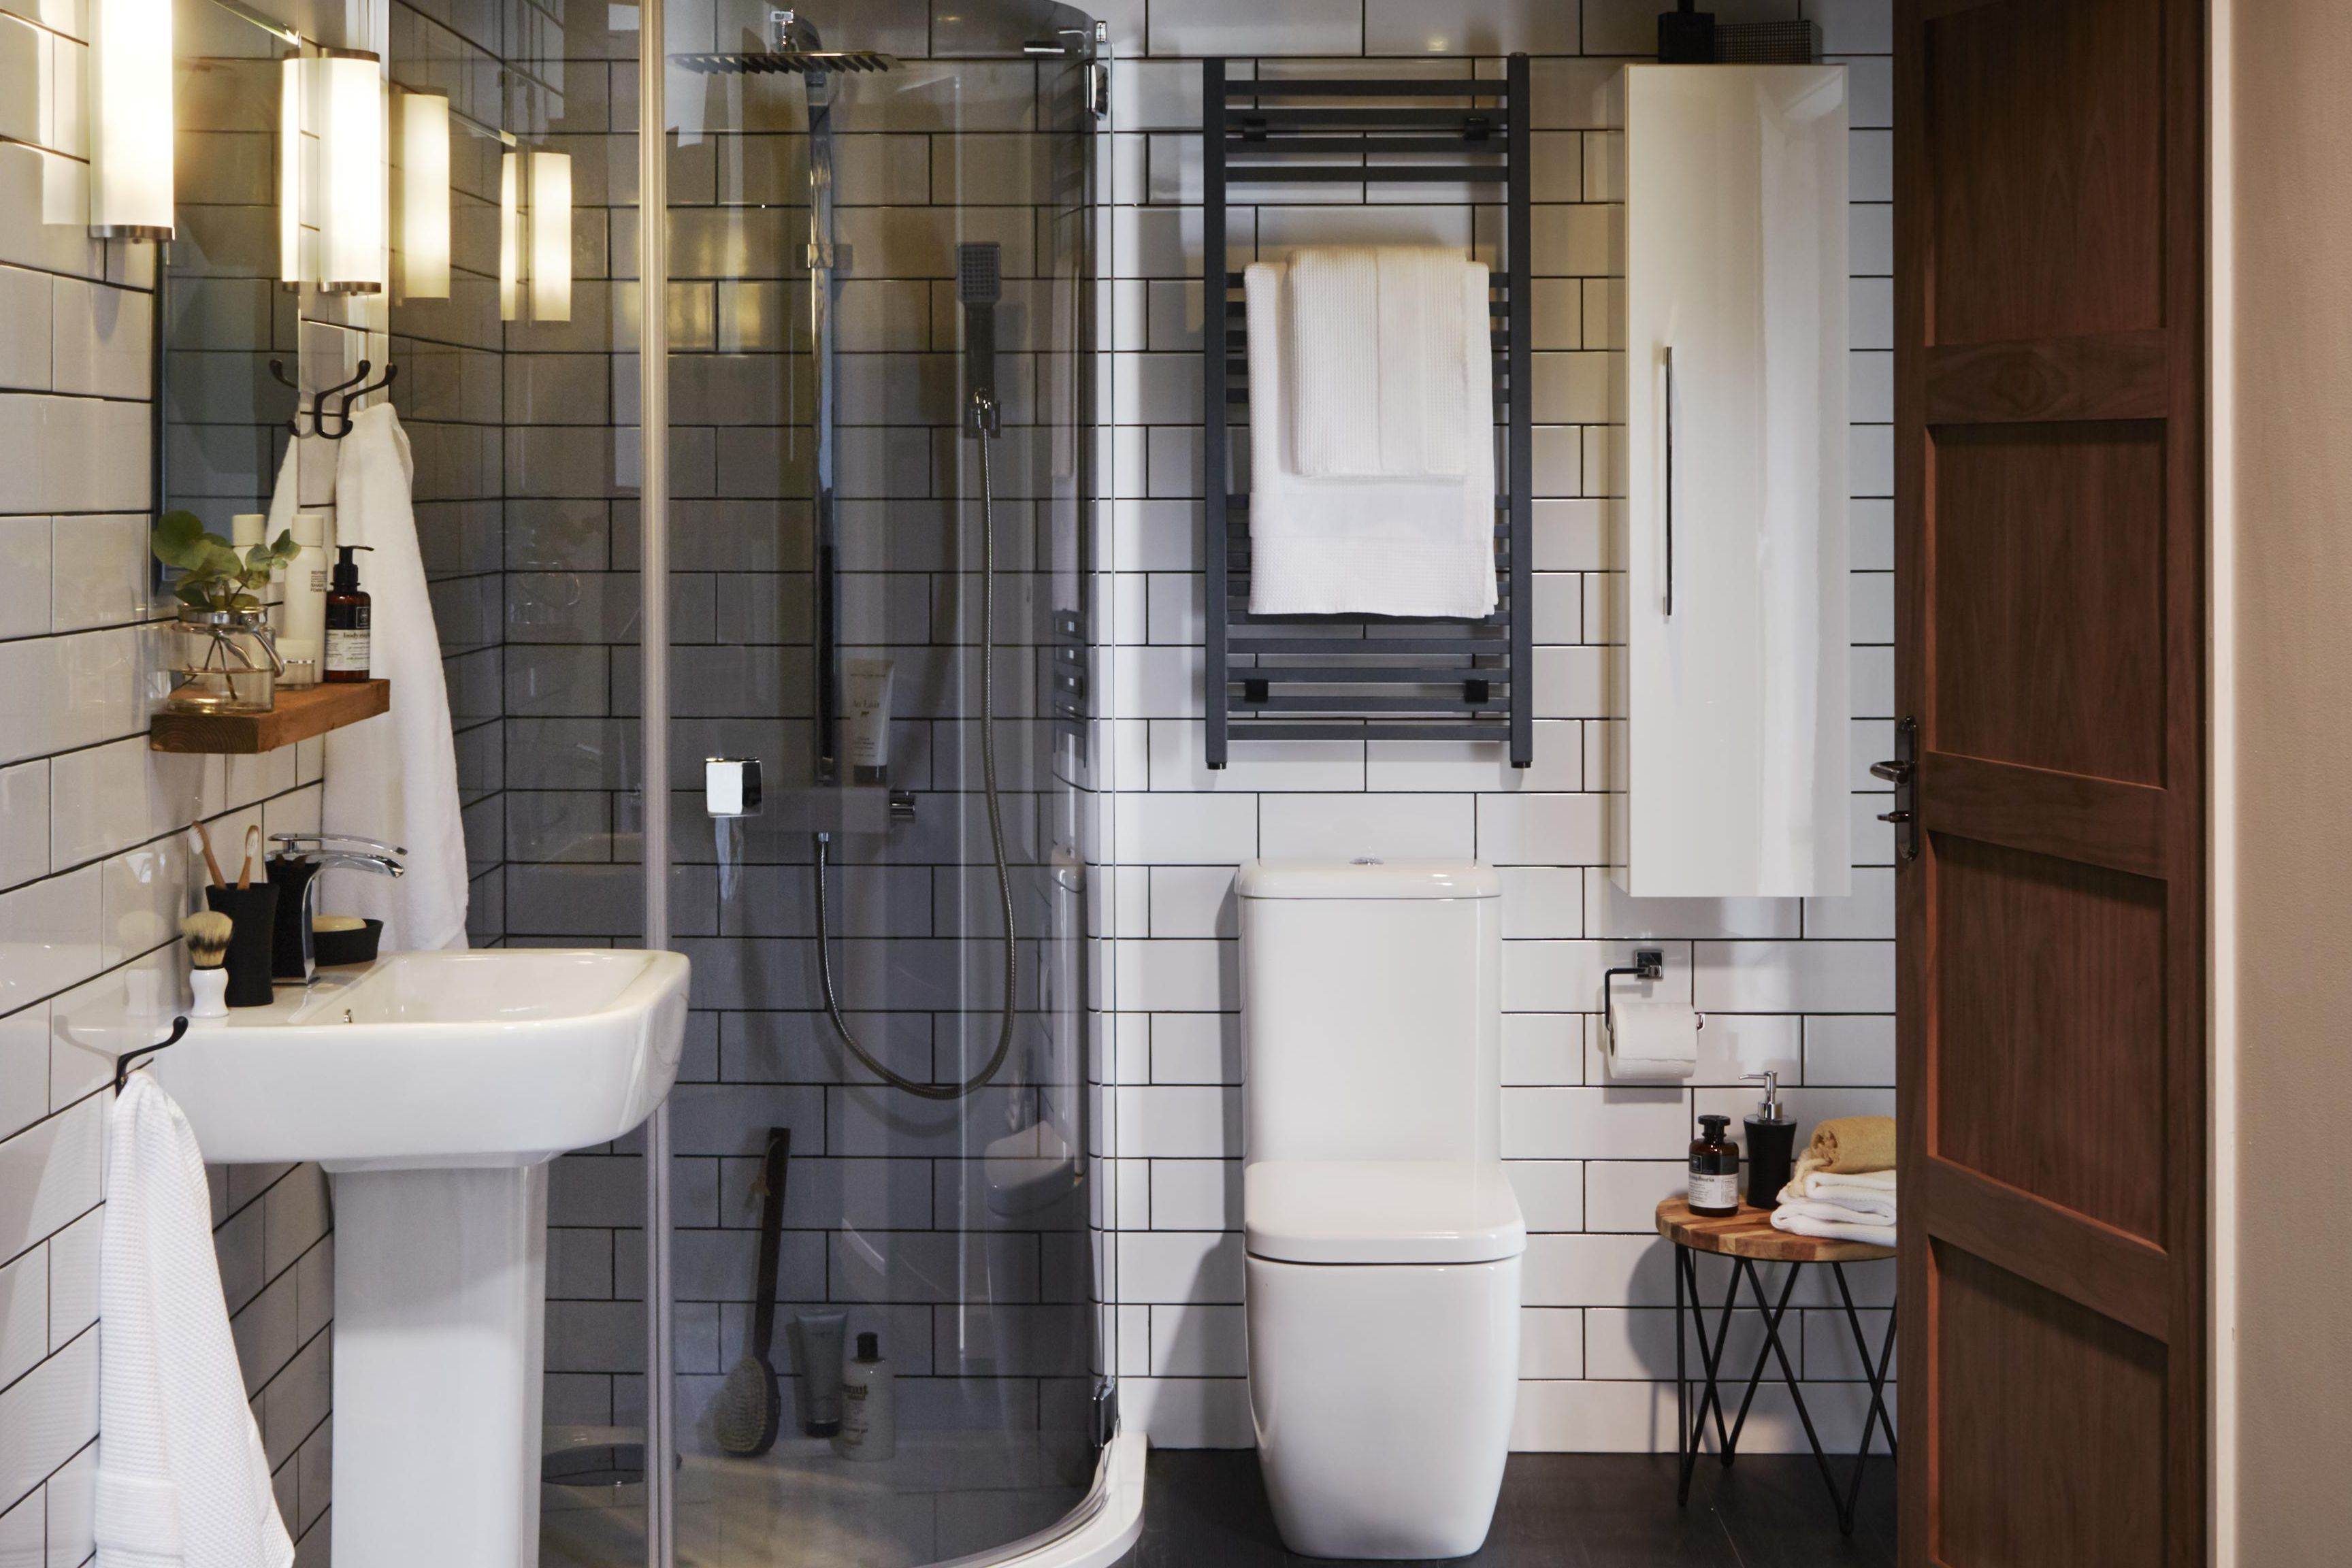 Image of Affini bathroom suite